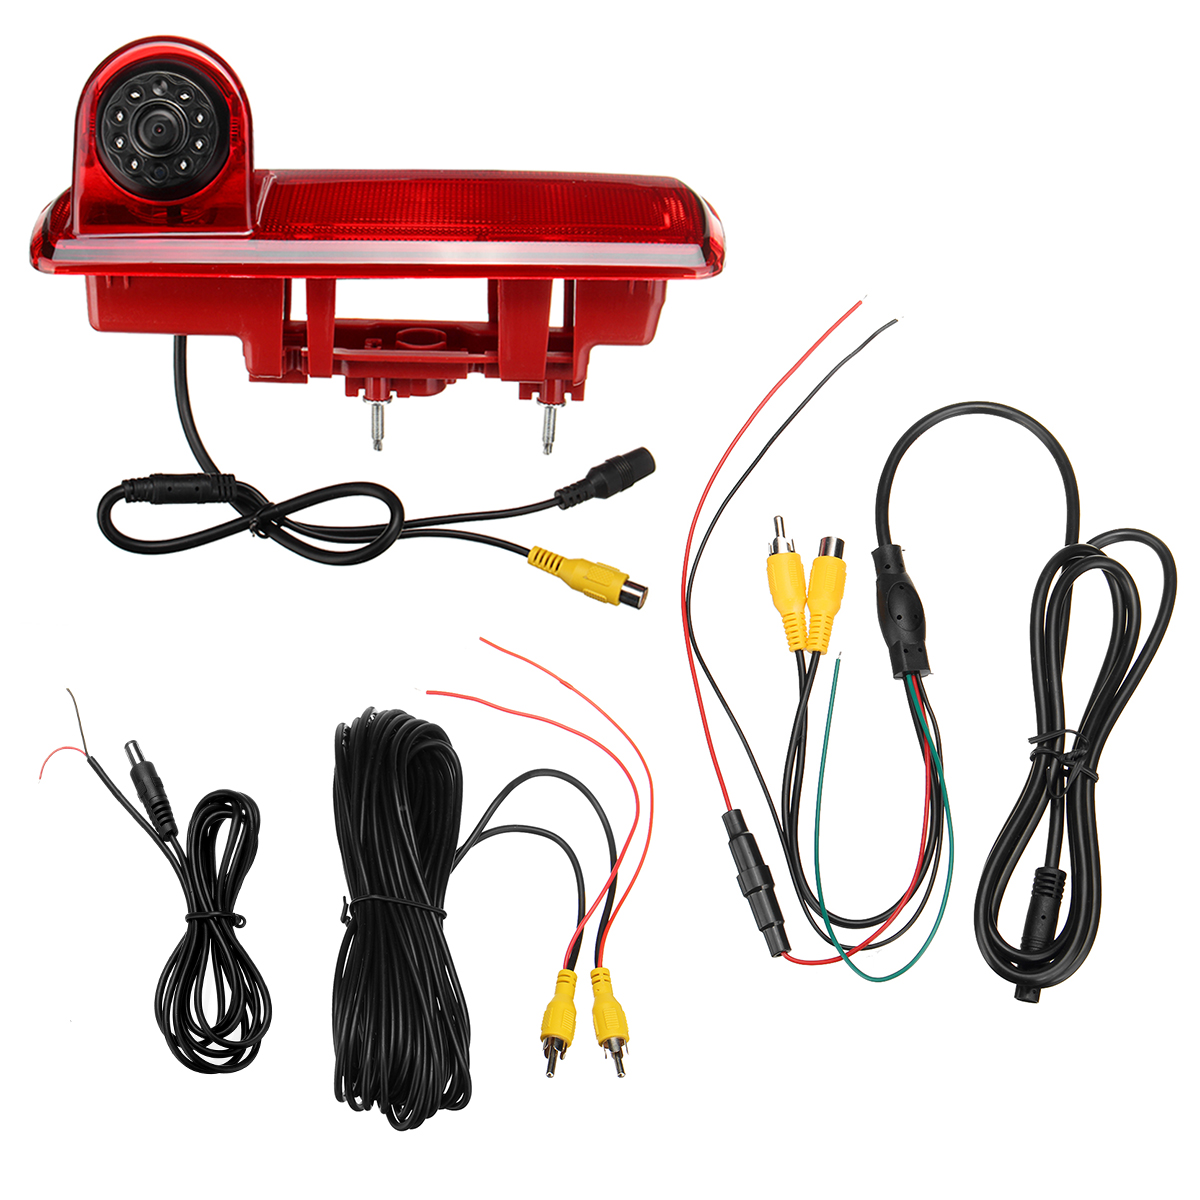 For Renault LED IR Brake Light Rear View Reversing Parking Camera & 7 Inch Monitor Kit For Brake Light Integration 2014 Present